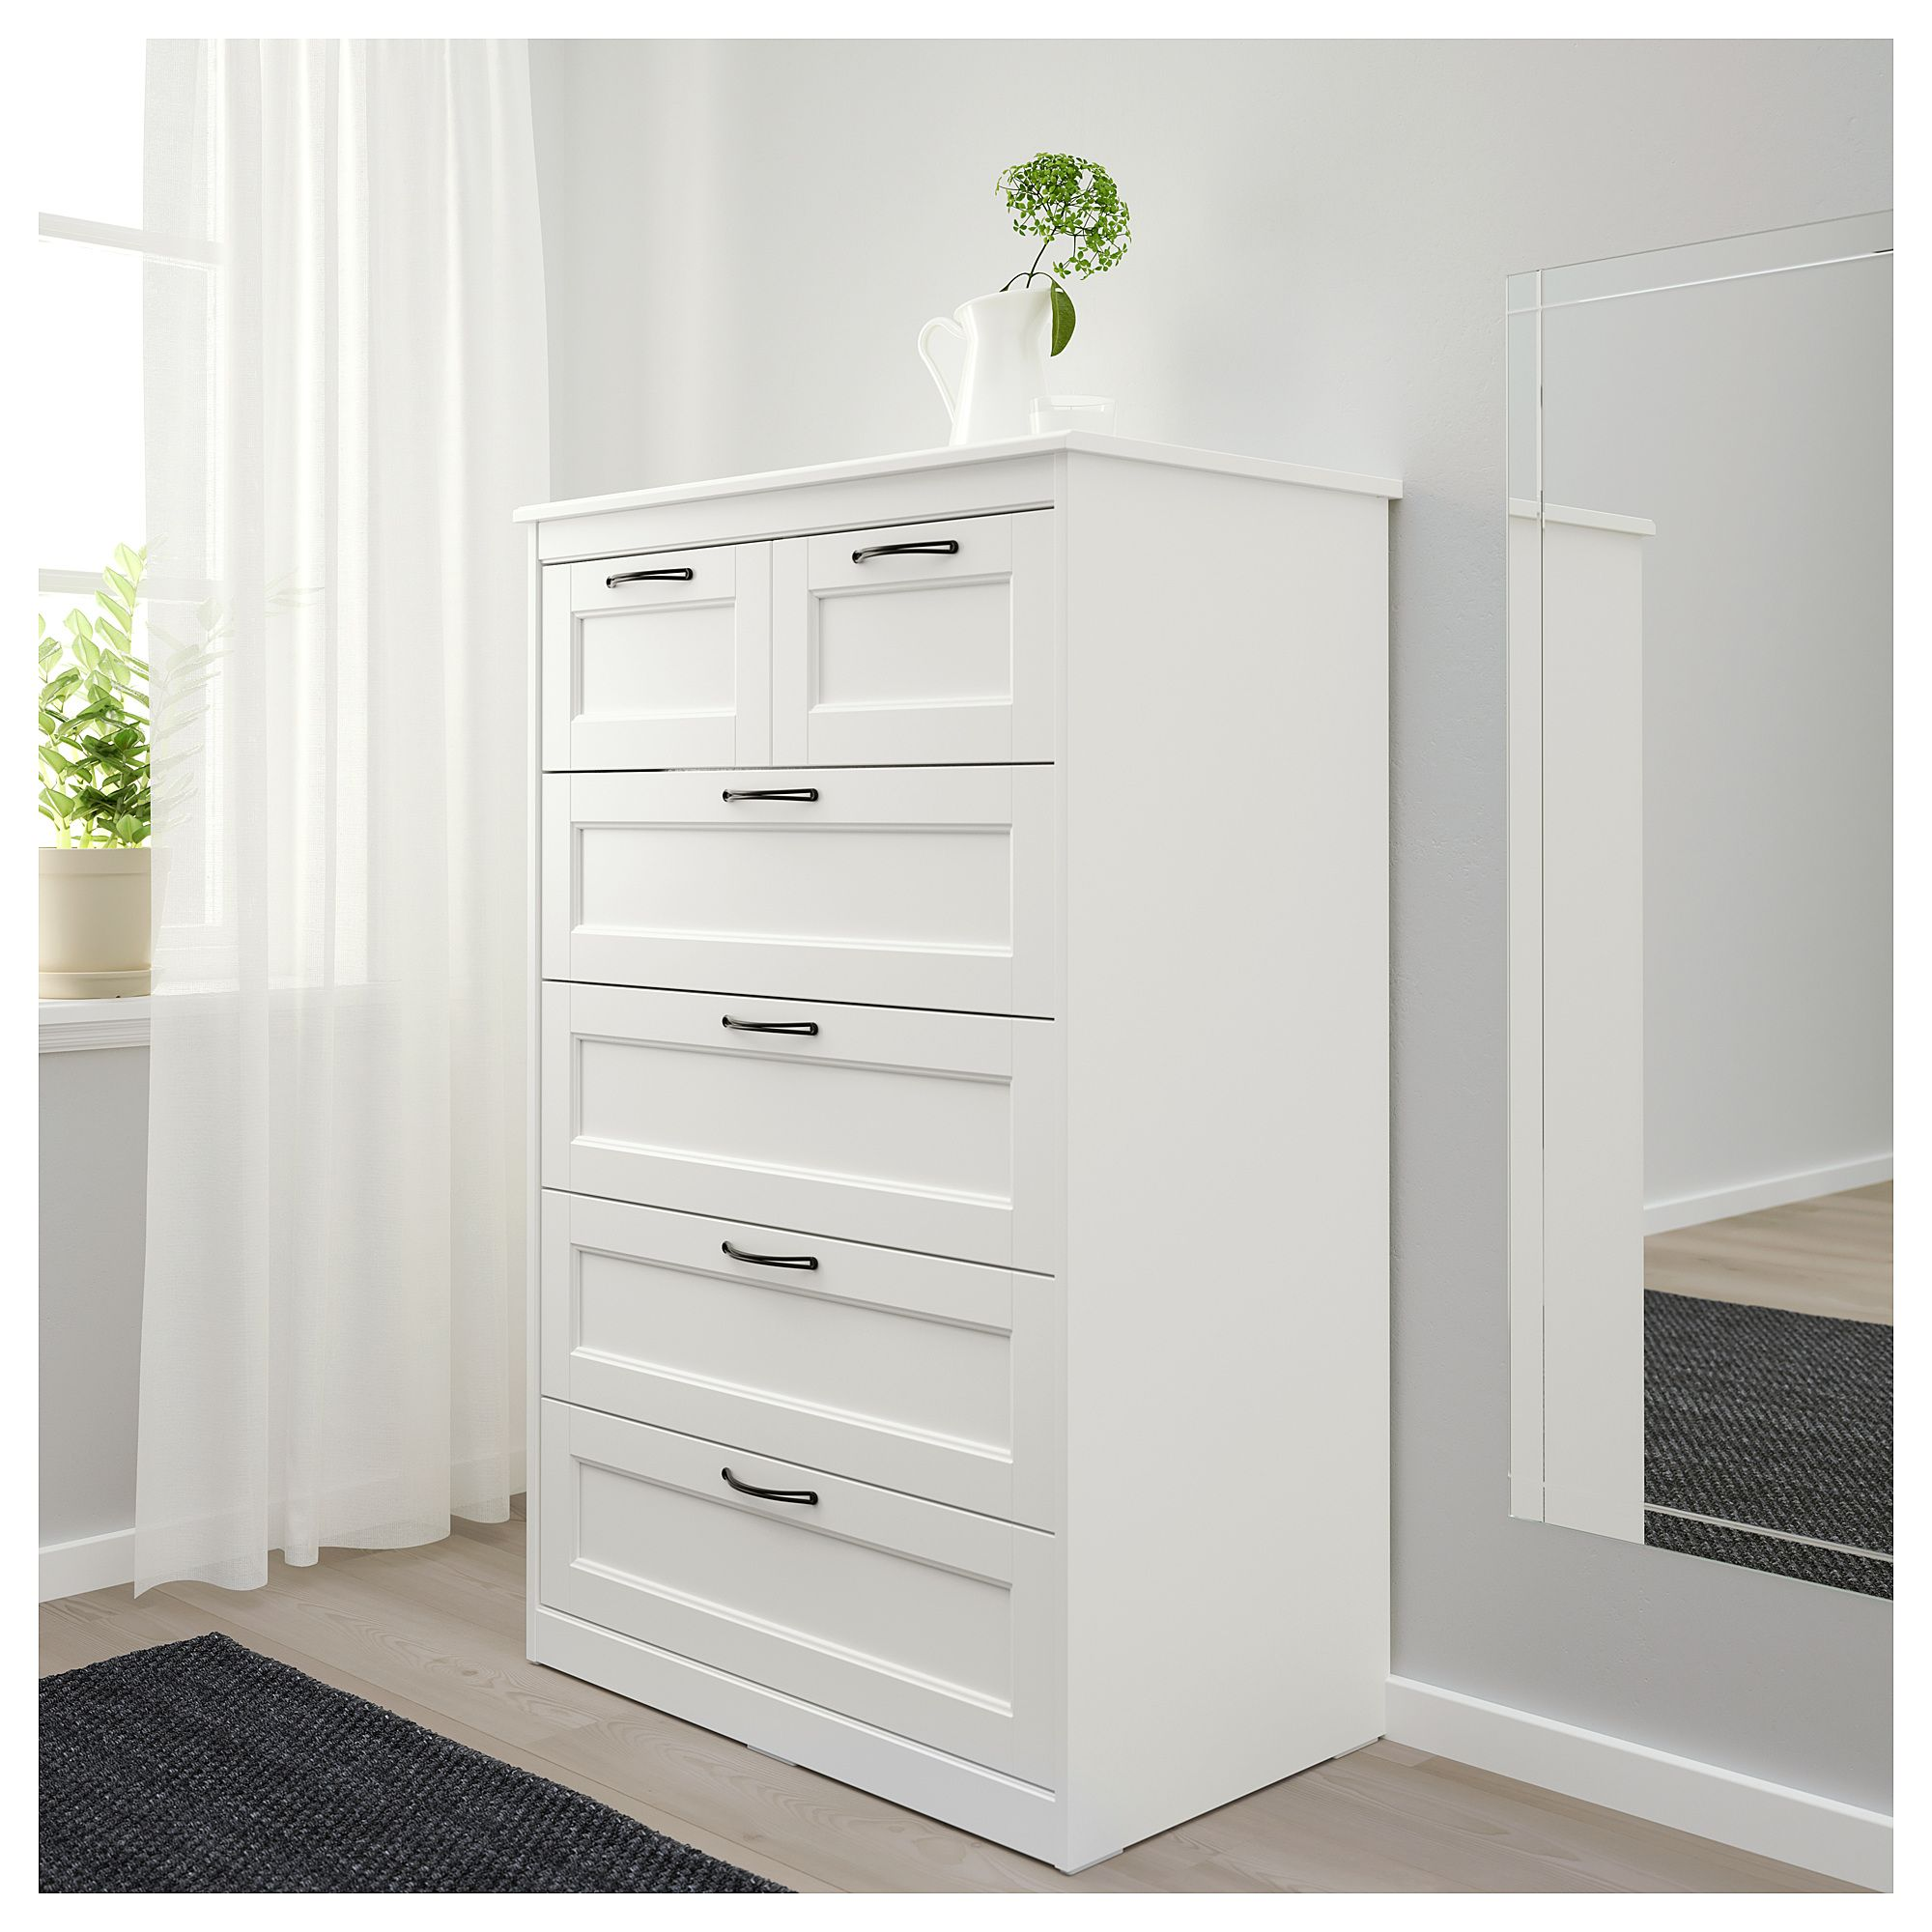 6-drawer chest, white, 32 1/4x49 5/8 \